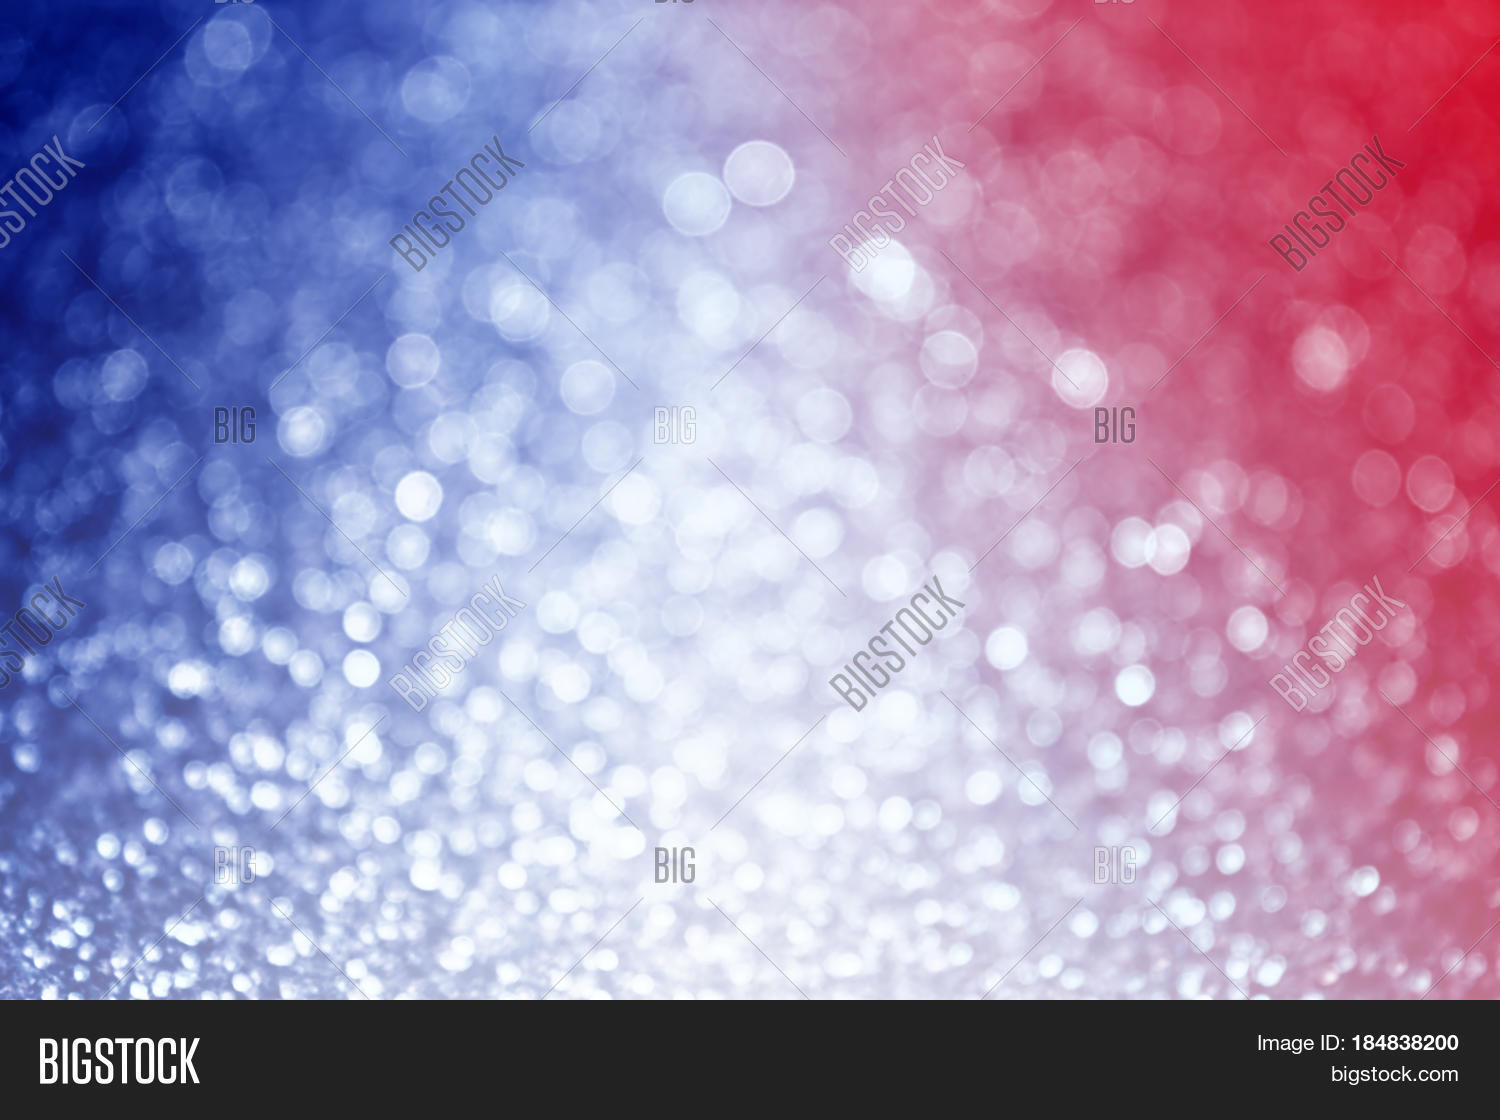 abstract patriotic red image photo free trial bigstock abstract patriotic red image photo